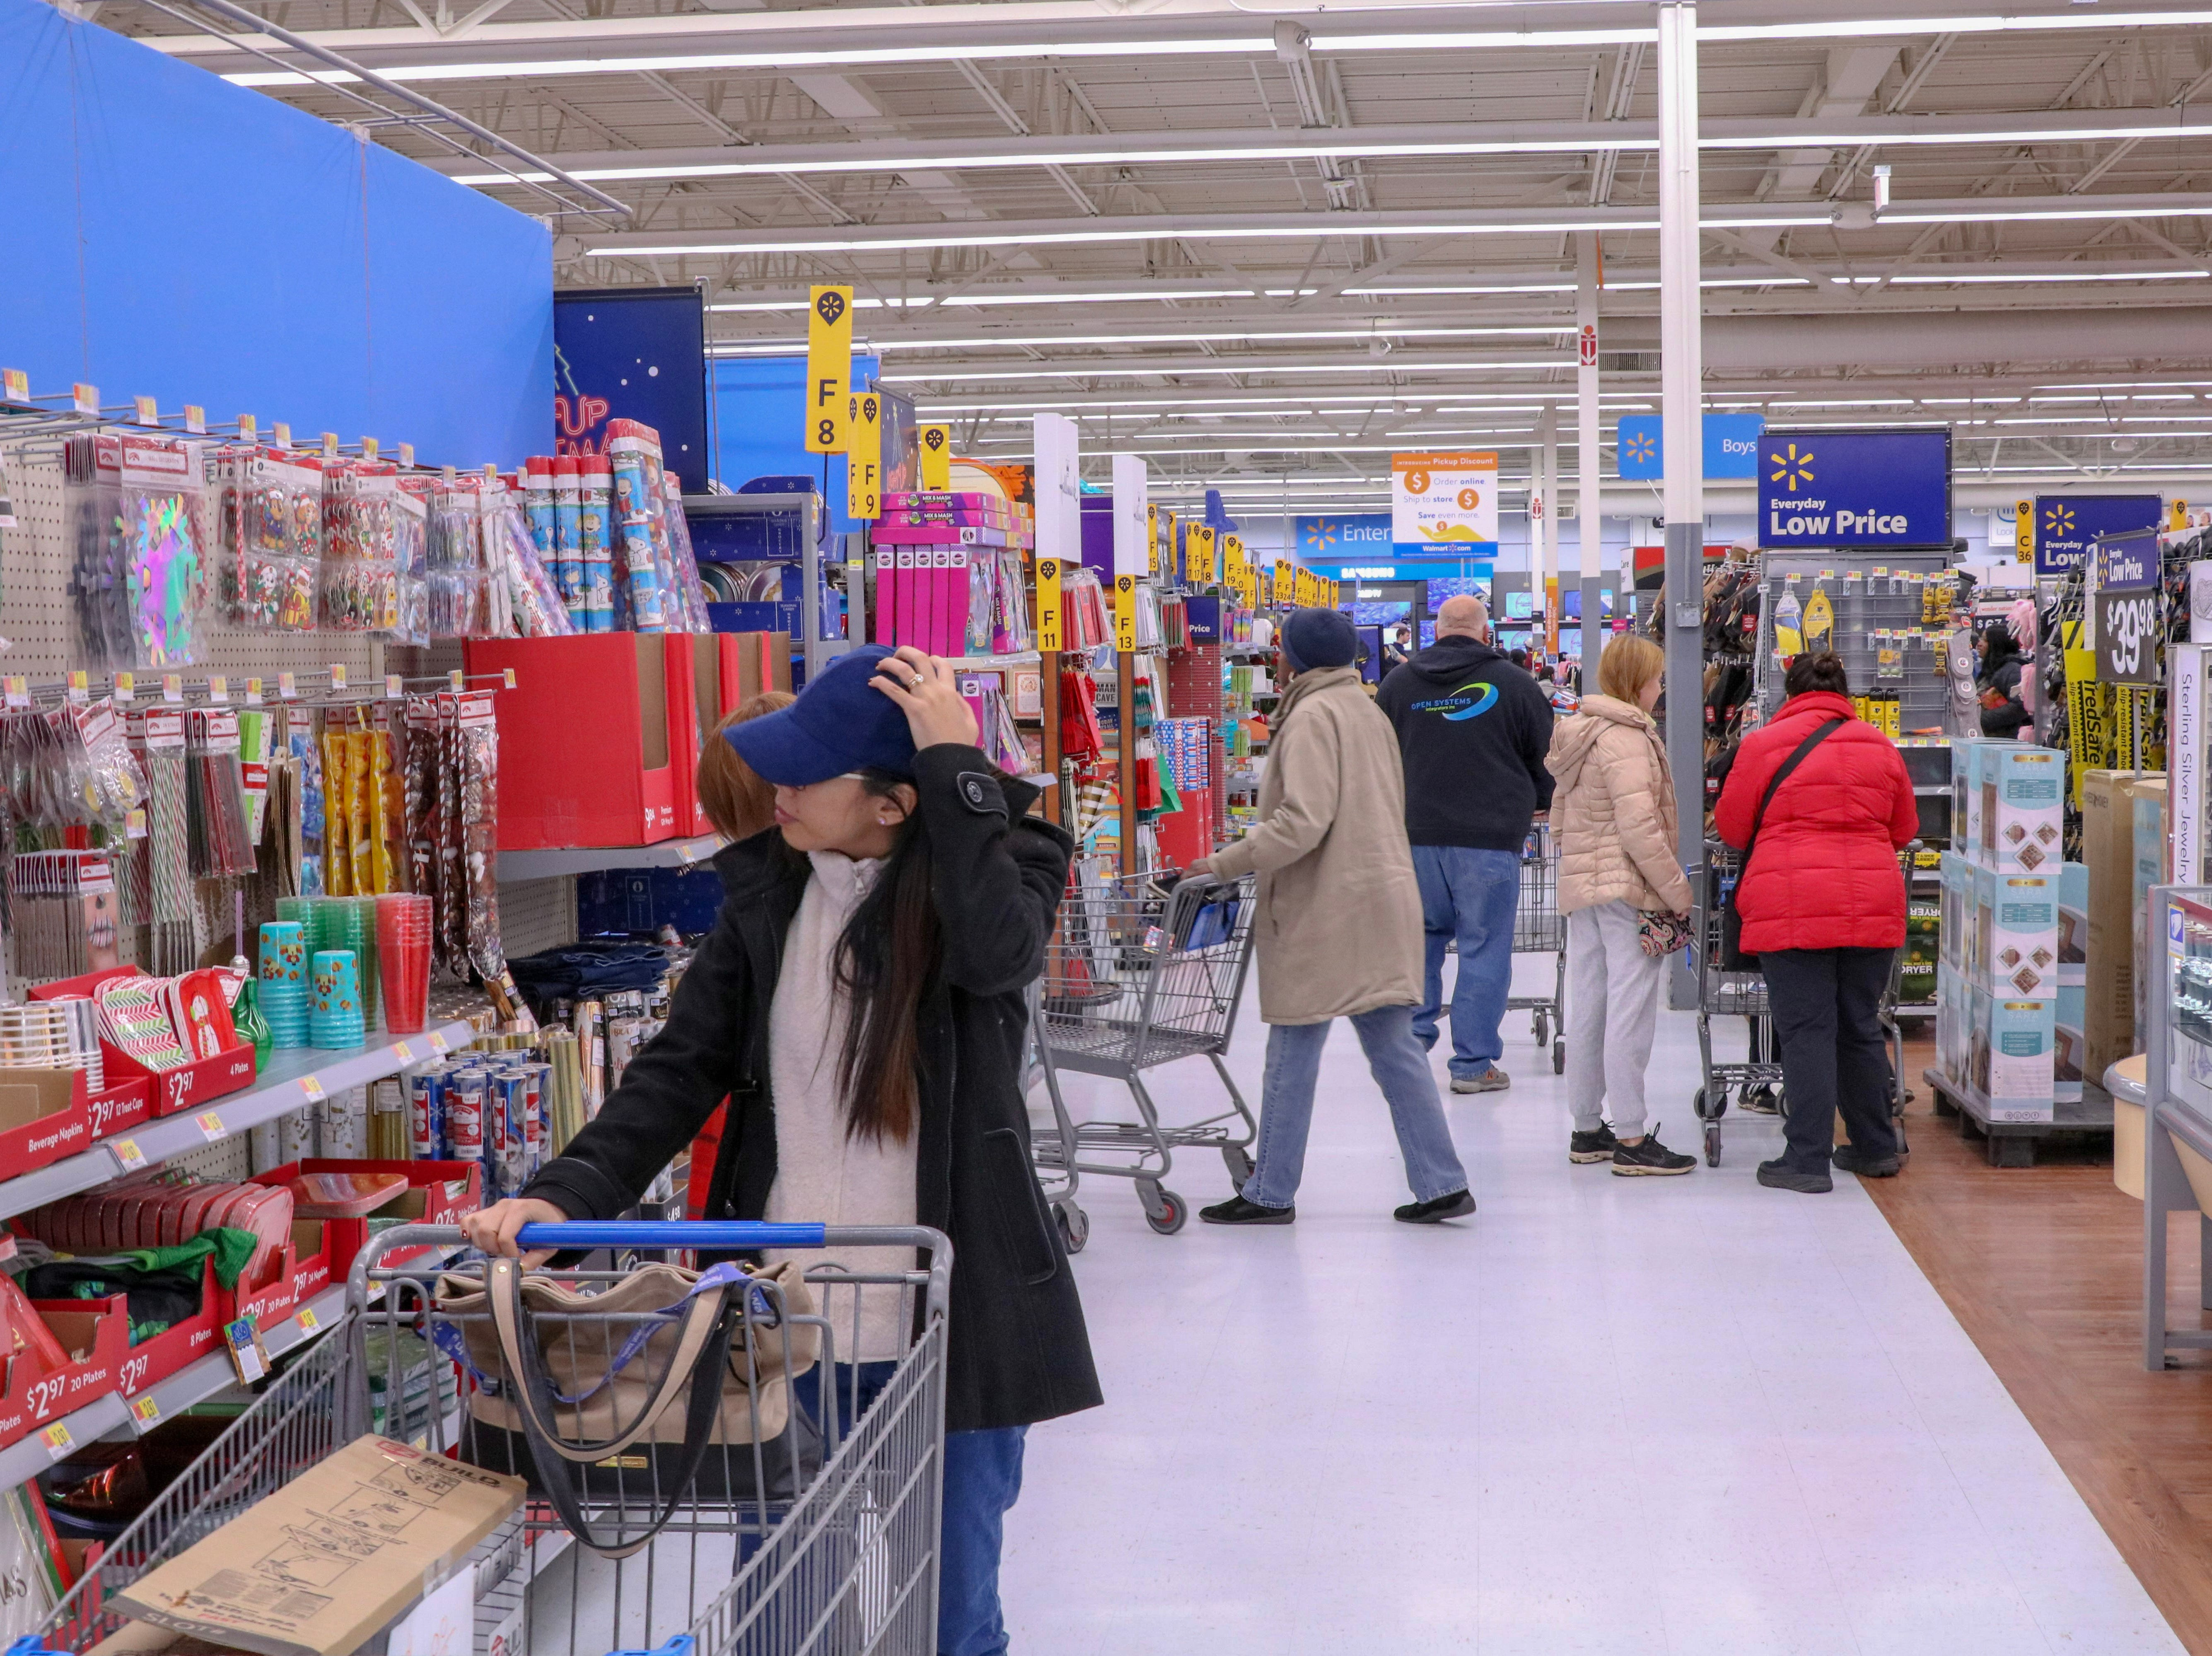 Black Friday shoppers take advantage of good deals at The Marketplace at Manville at 2 p.m. on Nov. 23